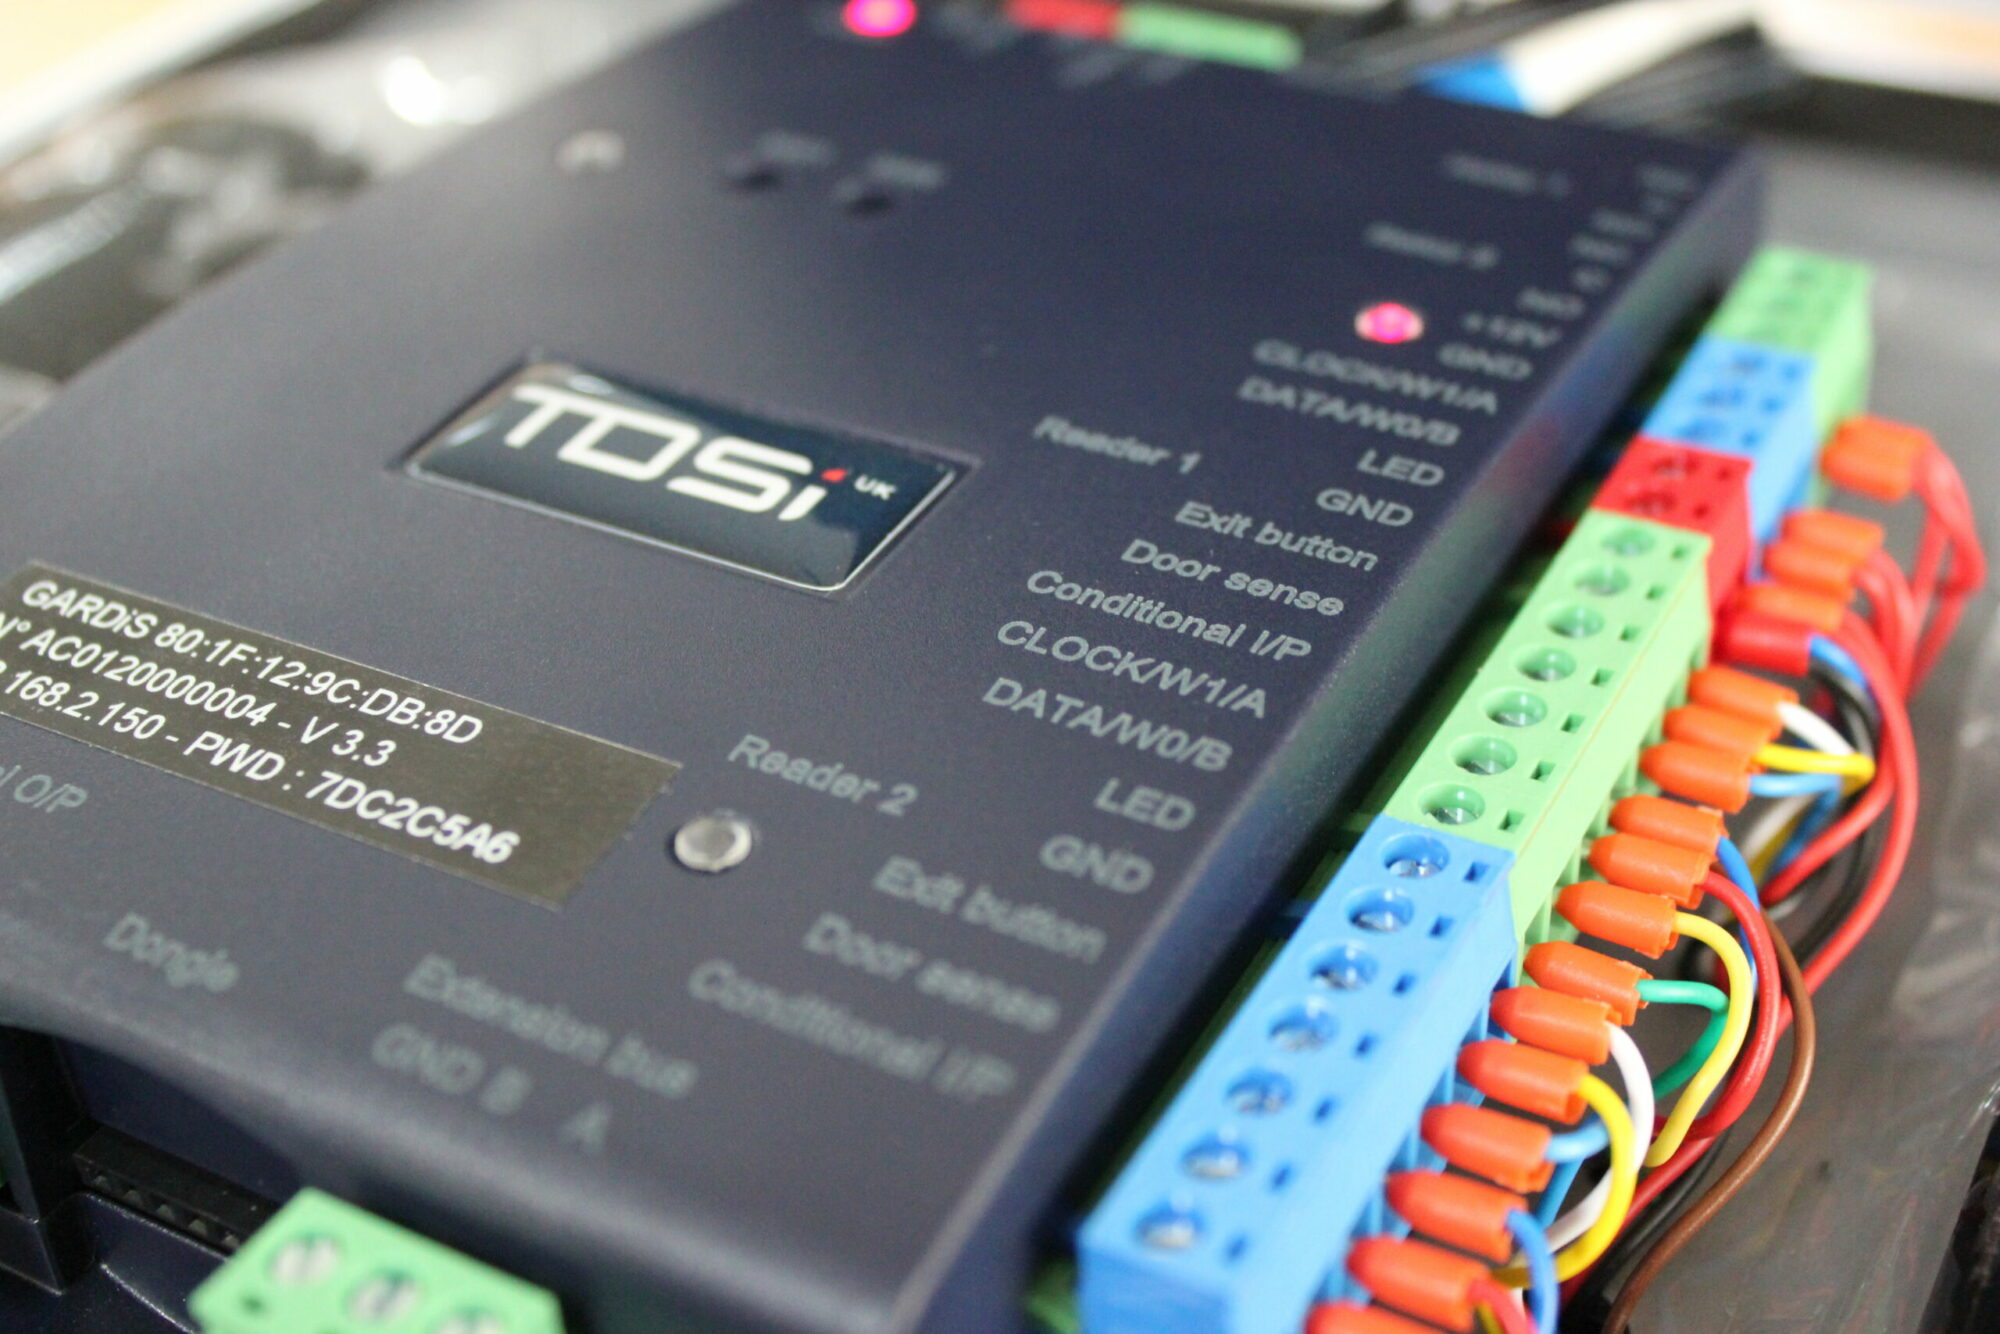 TDSi Launches New Web Embedded Controller